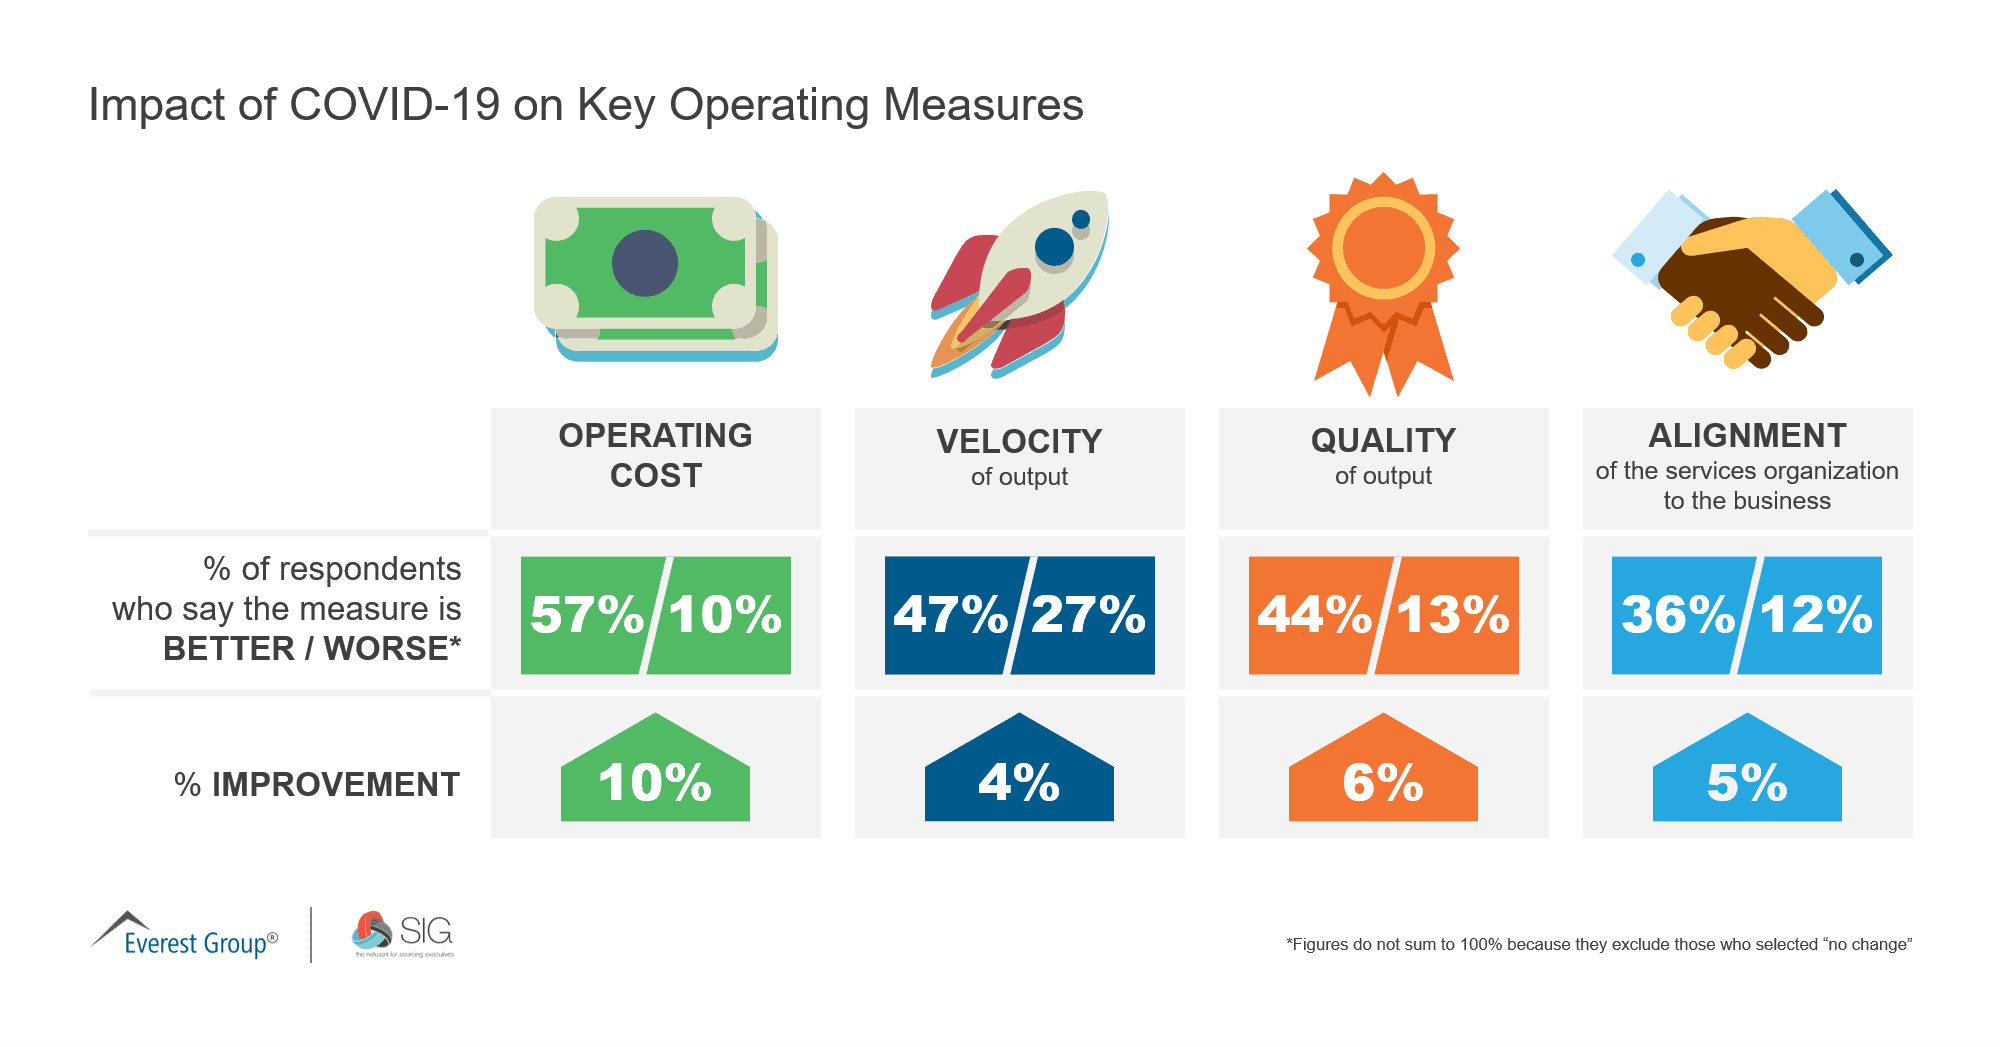 Impact of COVID 19 on Key Operating Measures